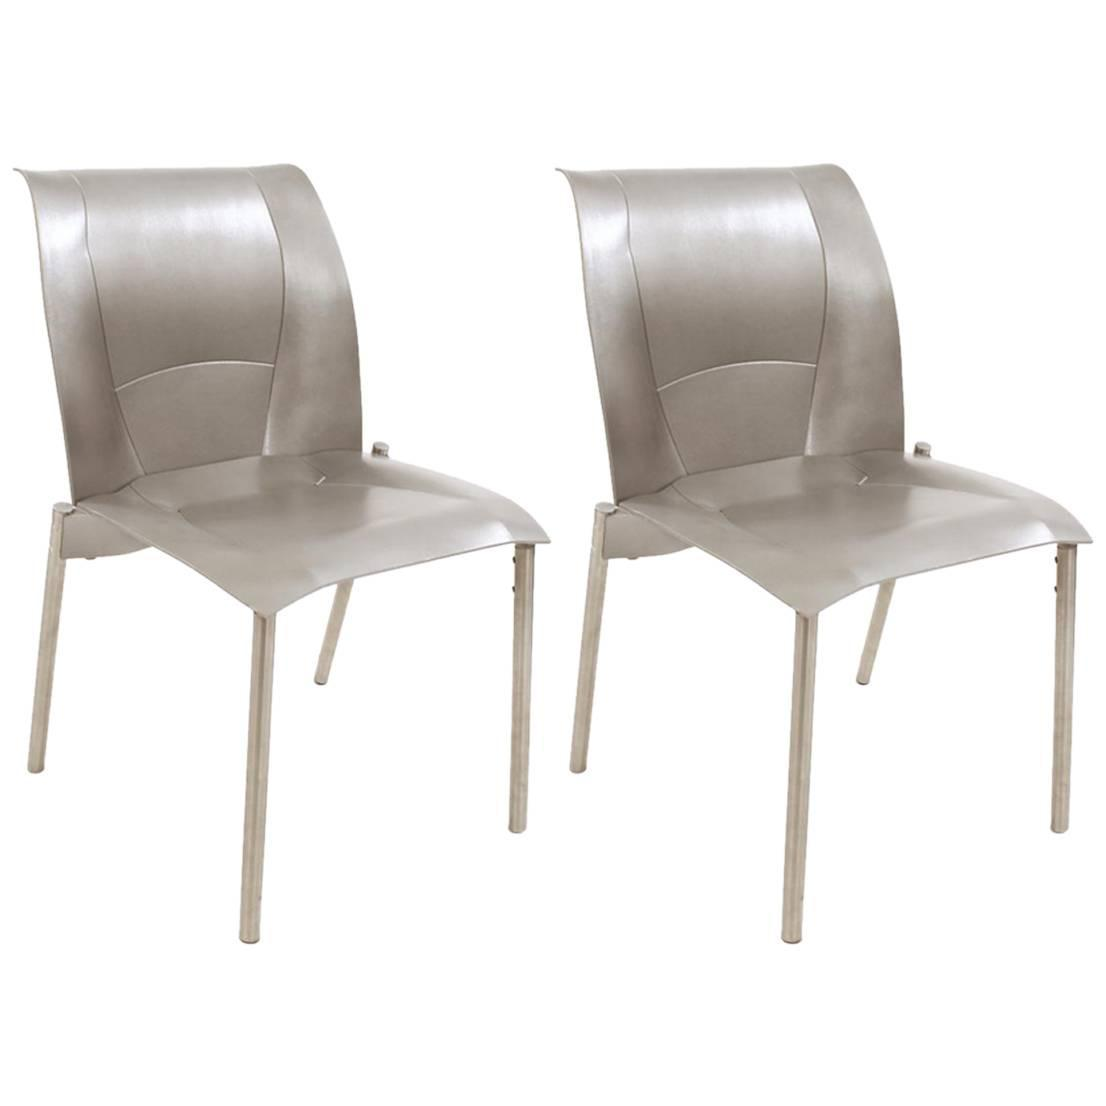 frank gehry chair light oak dining chairs pair of vintage knoll fog for sale at